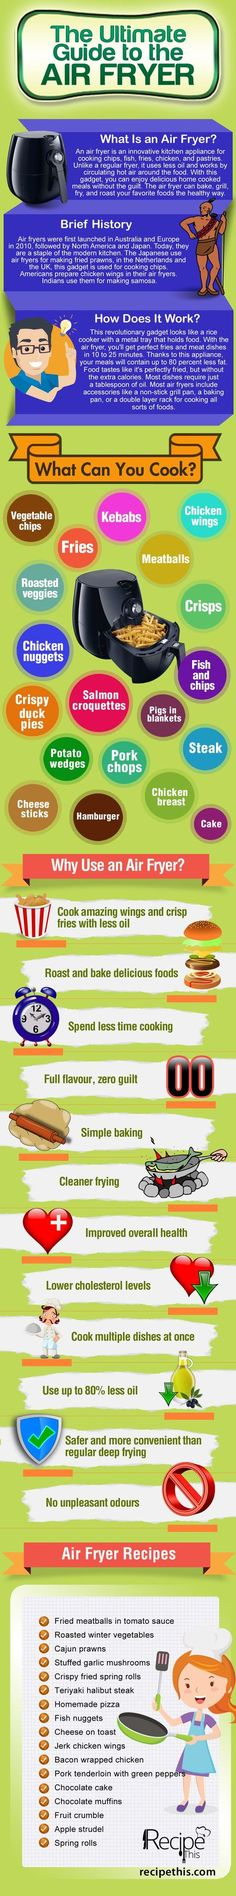 High Carb Foods, No Carb Diets, Low Carb, Phillips Air Fryer, Nuwave Air Fryer, Actifry Recipes, Cooks Air Fryer, Carb Cycling Diet, Air Fryer Review